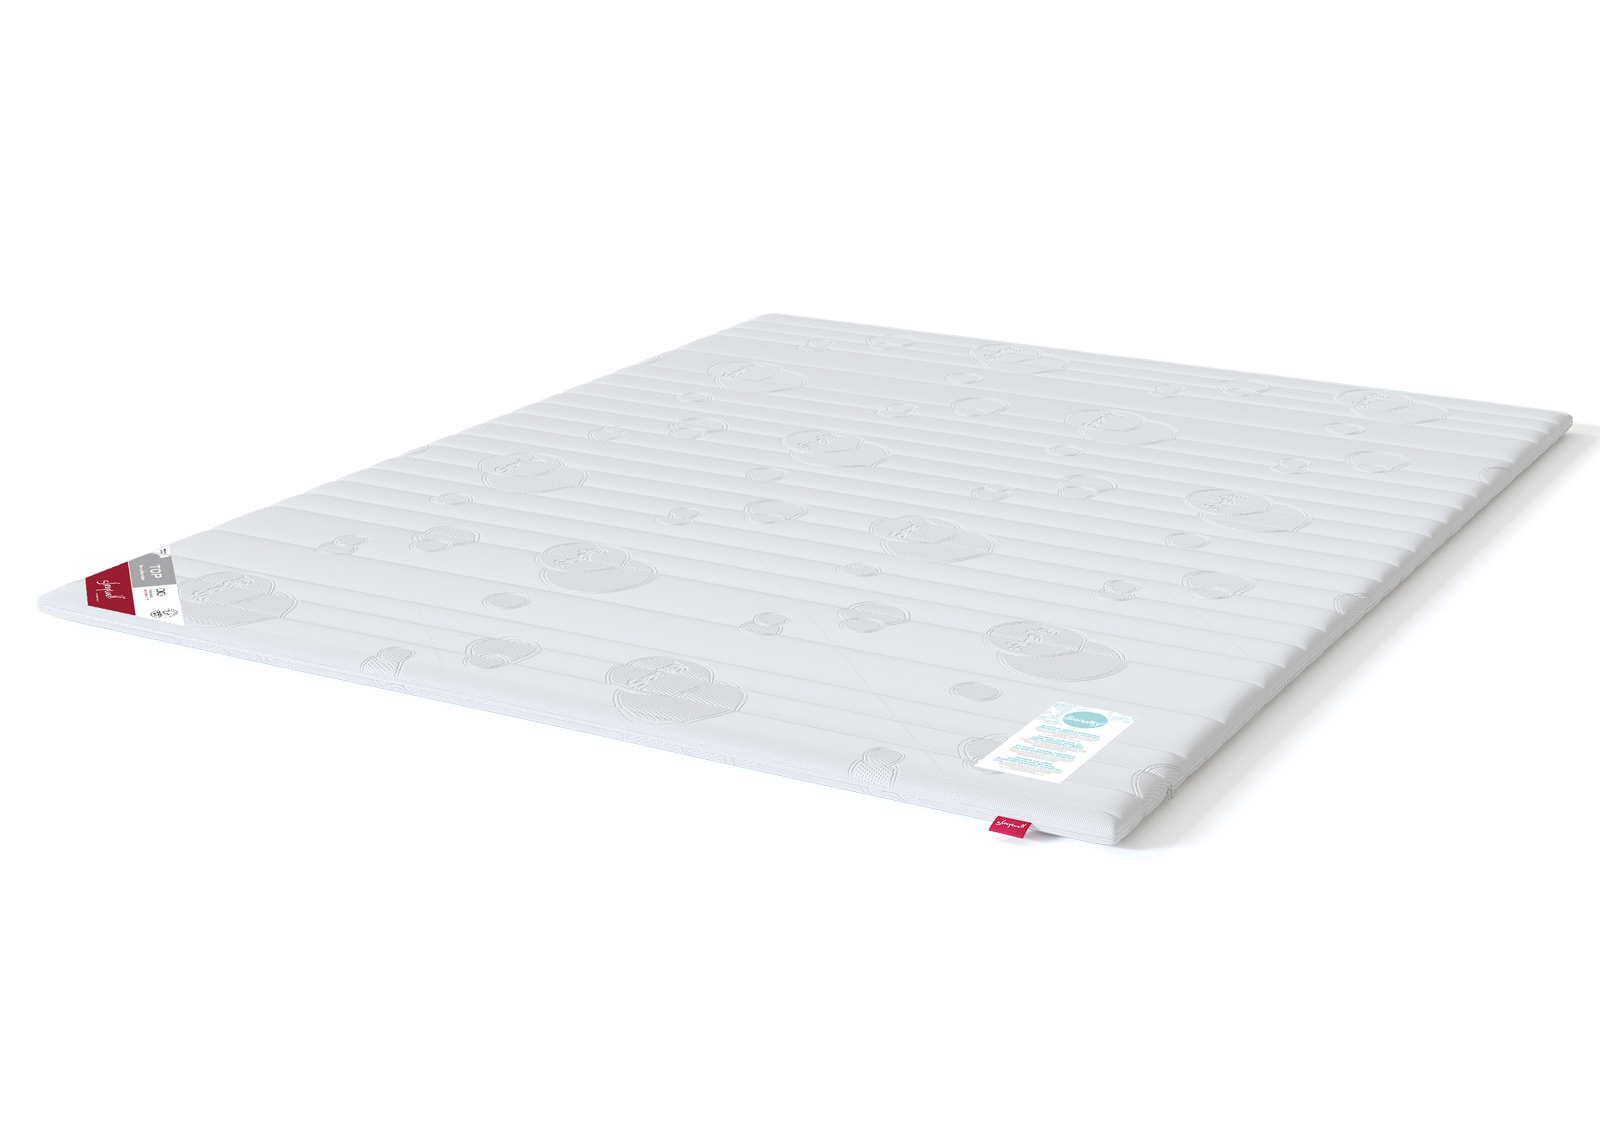 Sleepwell petauspatja TOP Coco 160x200 cm